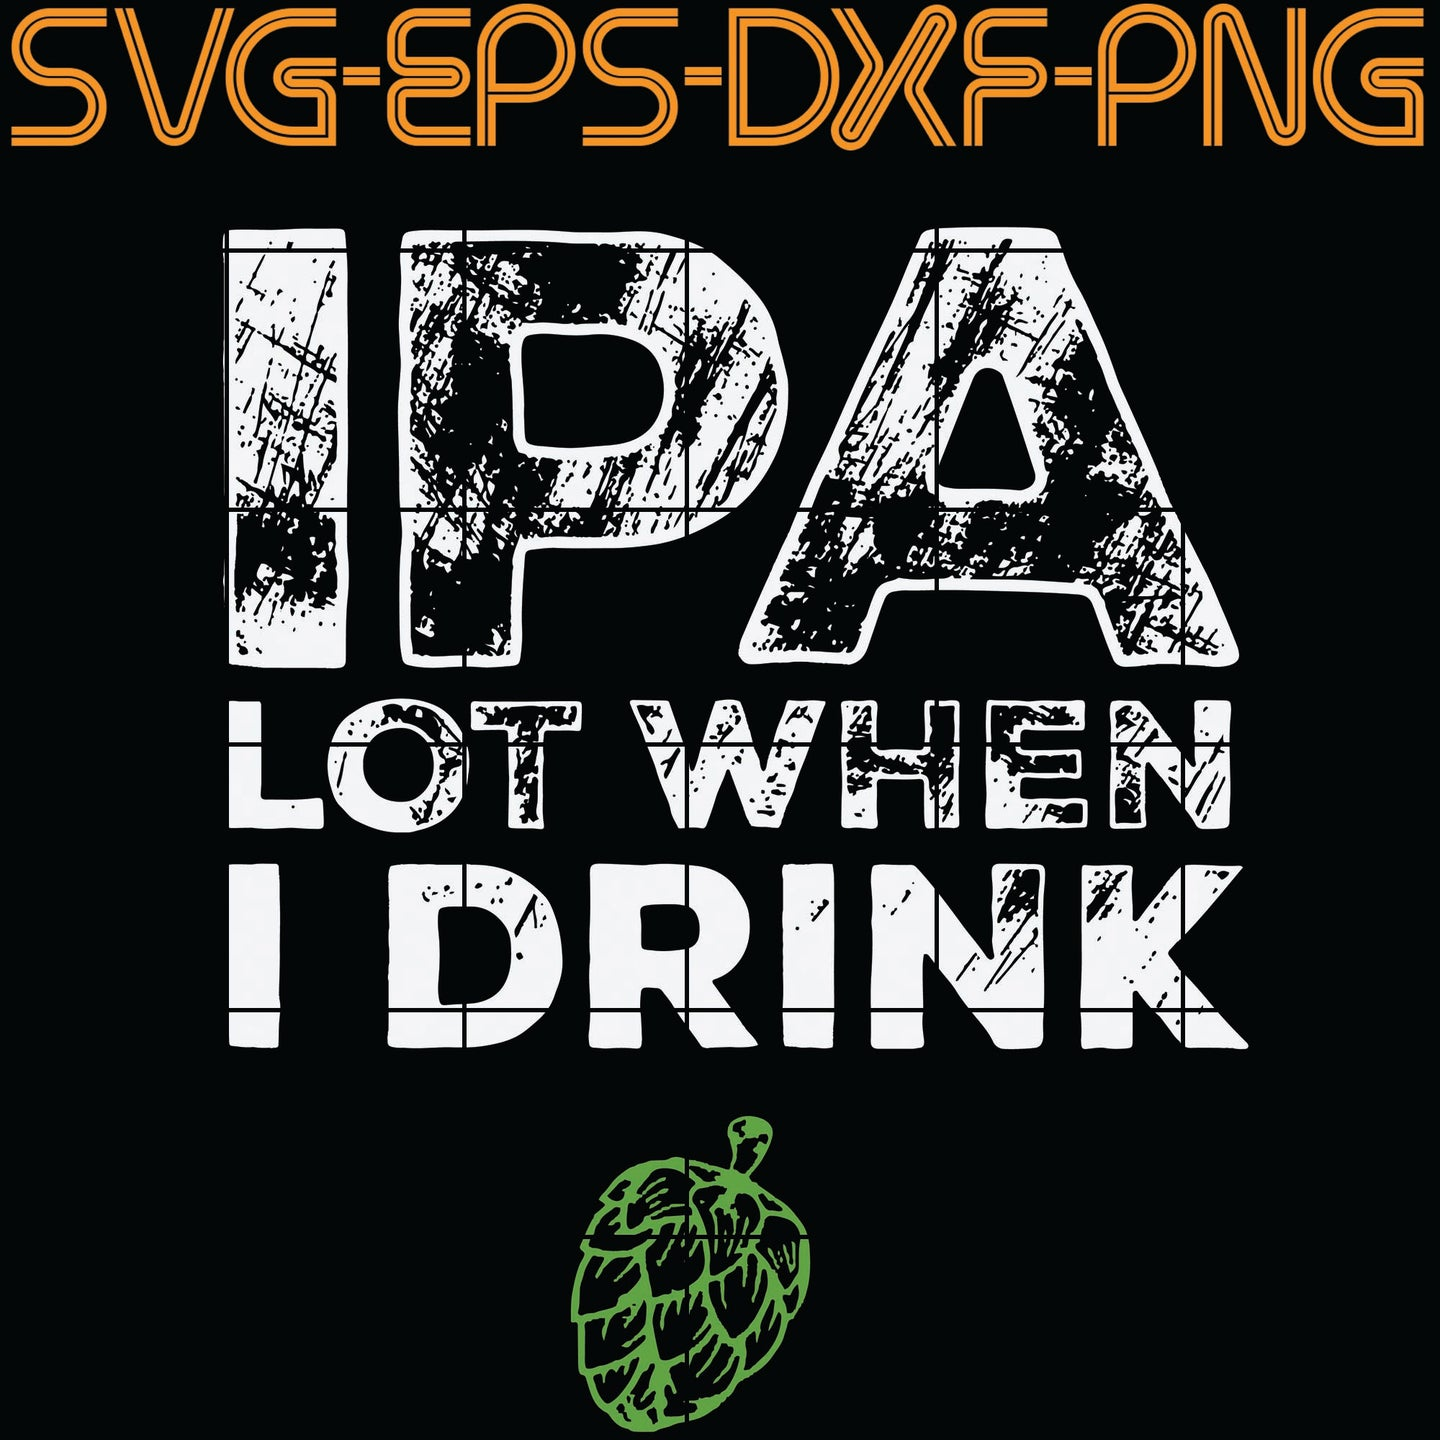 Ipa Lot When I Drink , Quotes, PNG, EPS, DXF, Digital Download